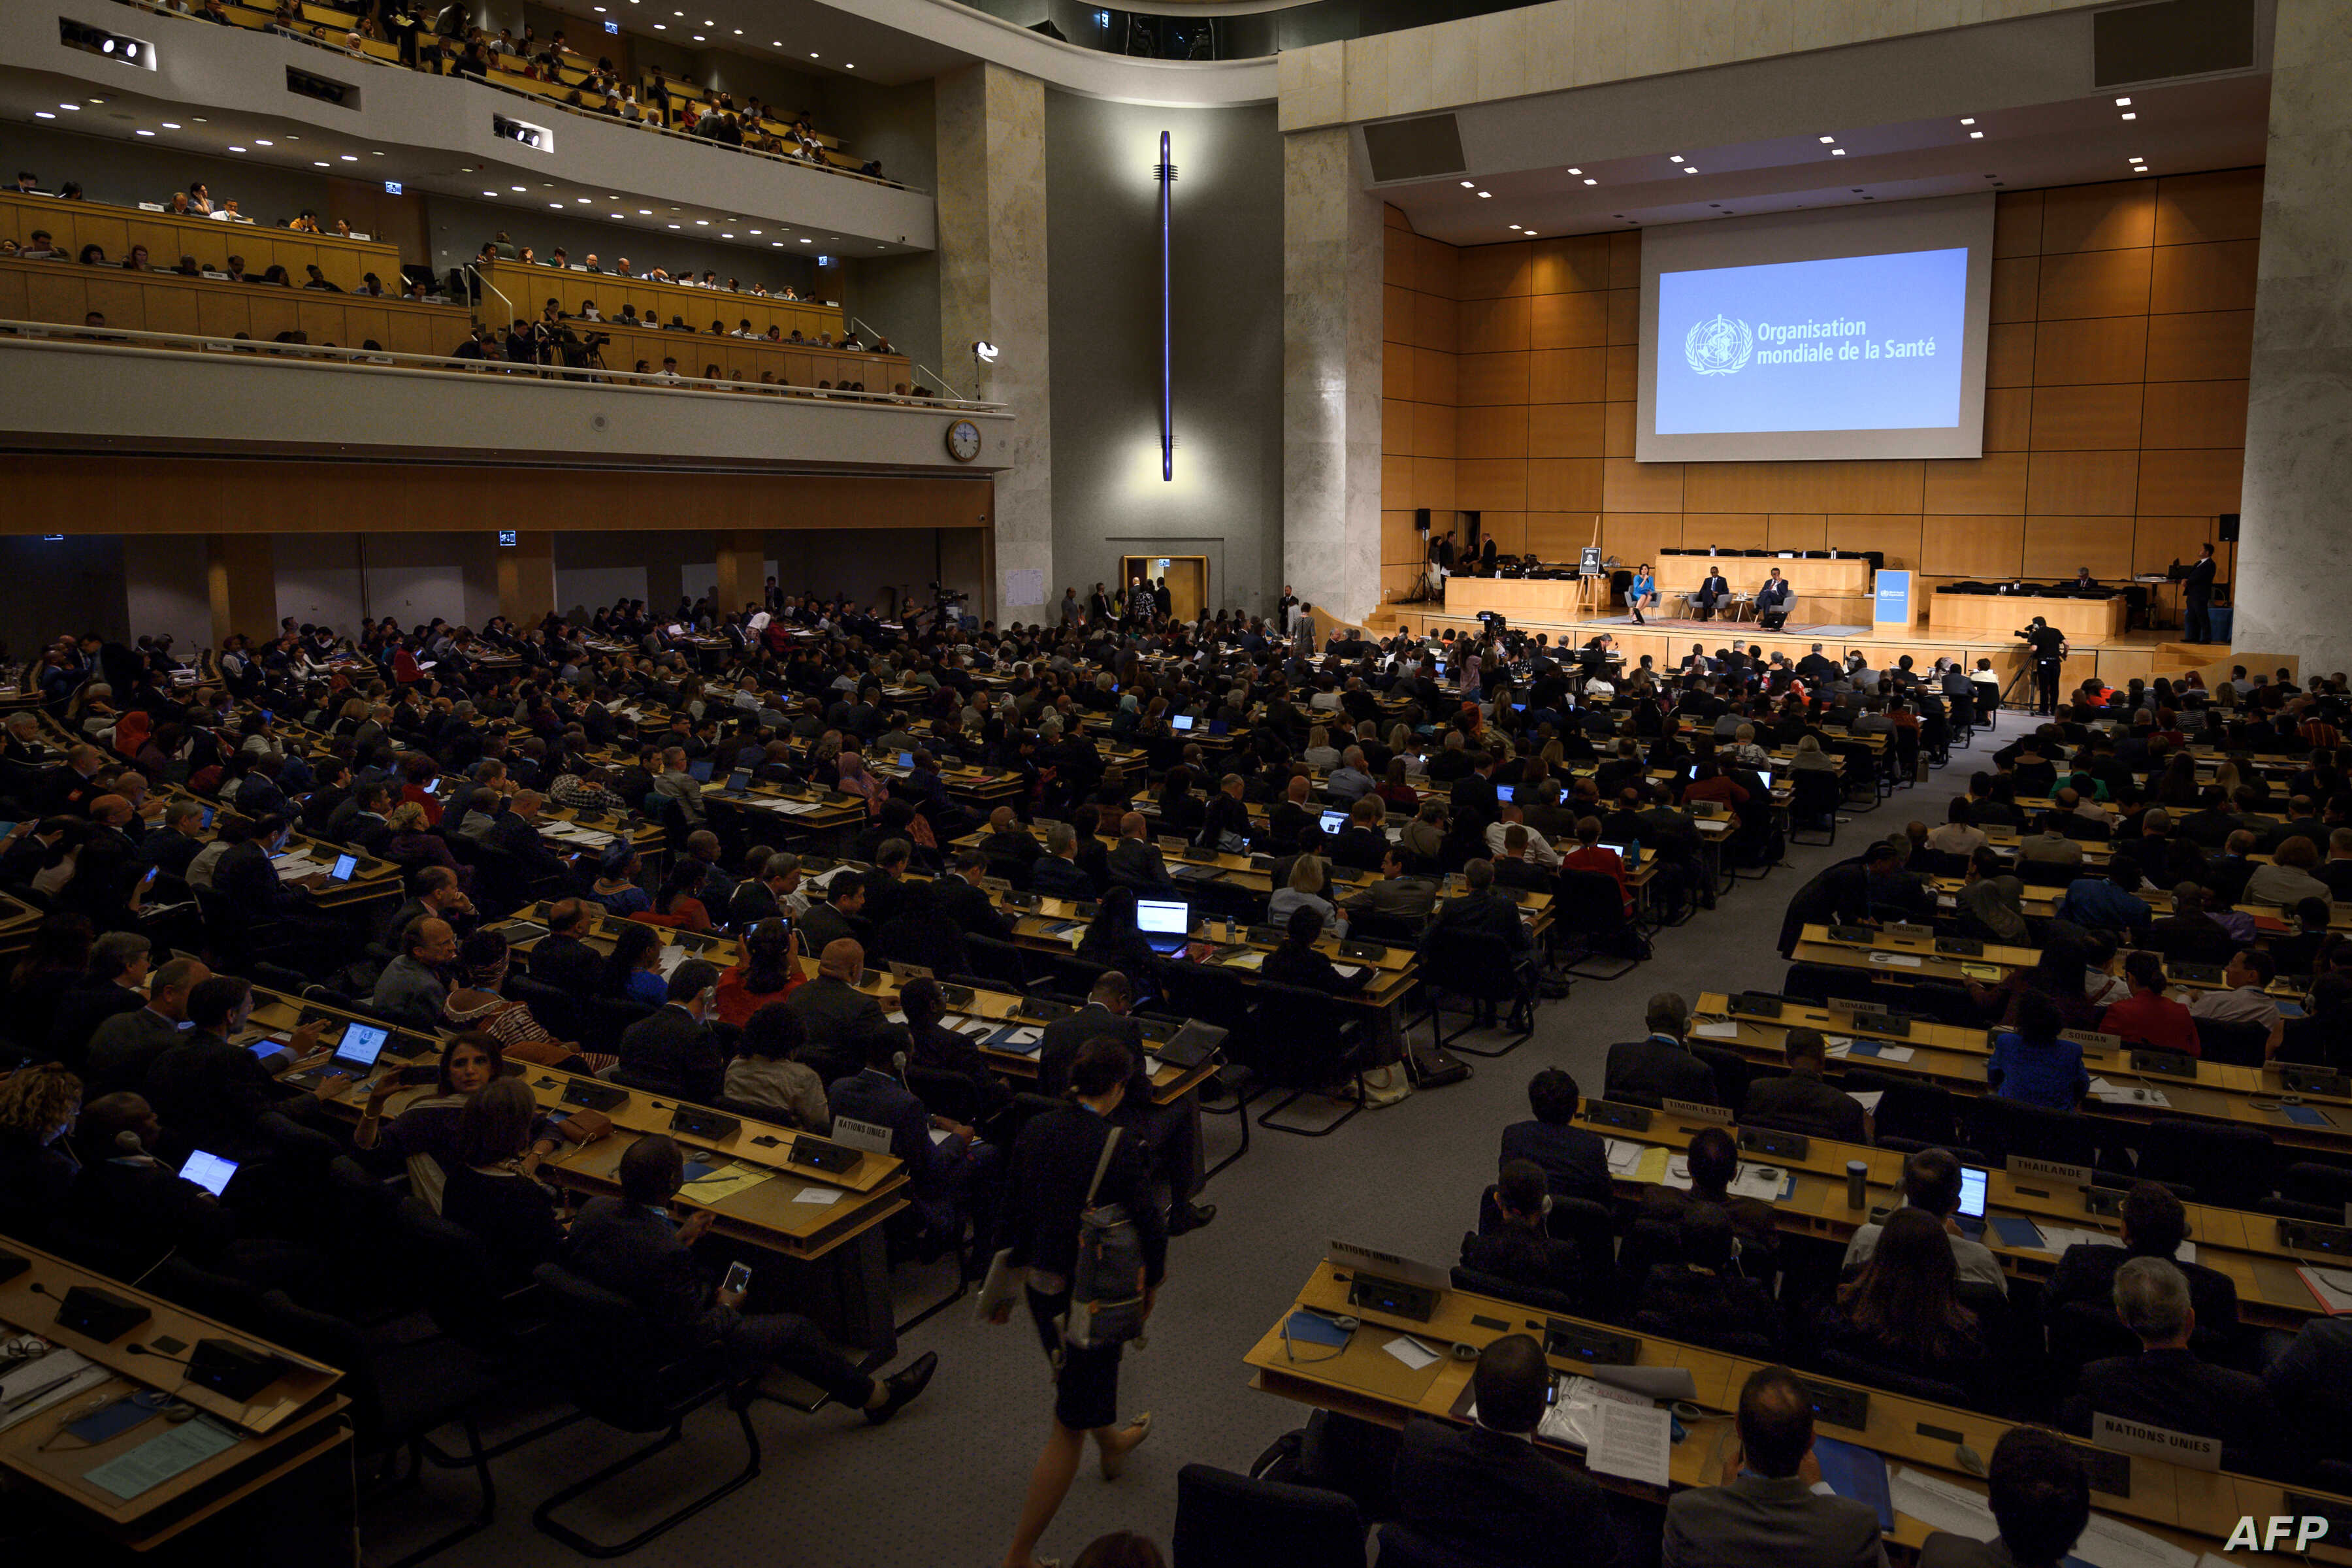 A picture taken on May 21, 2018 in Geneva shows a general view during the World Health Organization (WHO) Assembly, an annual meeting with health representatives to discuss a range of global health issues.